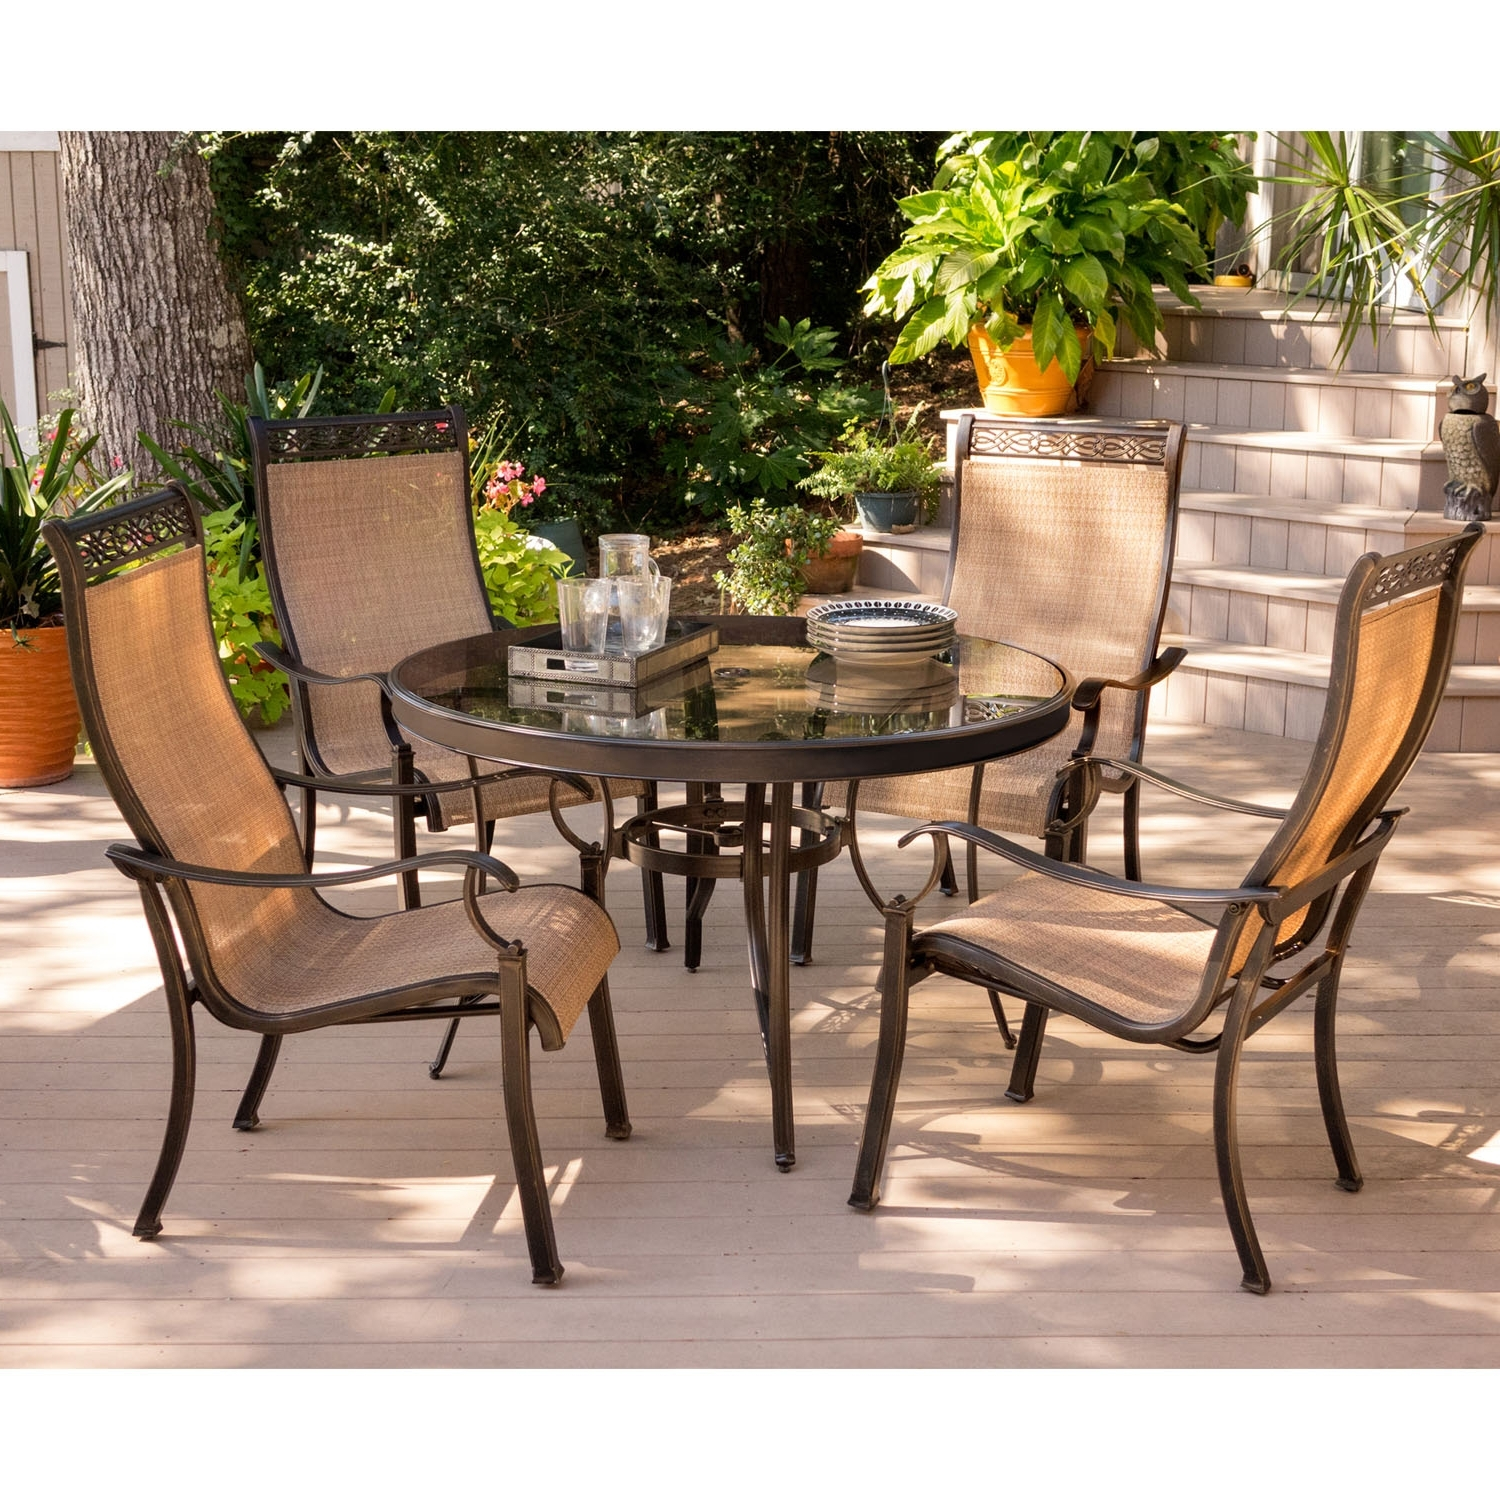 Monaco Dining Sets With Regard To Widely Used Hanover Monaco 5 Piece Dining Set, Mondn5Pcg (View 13 of 25)